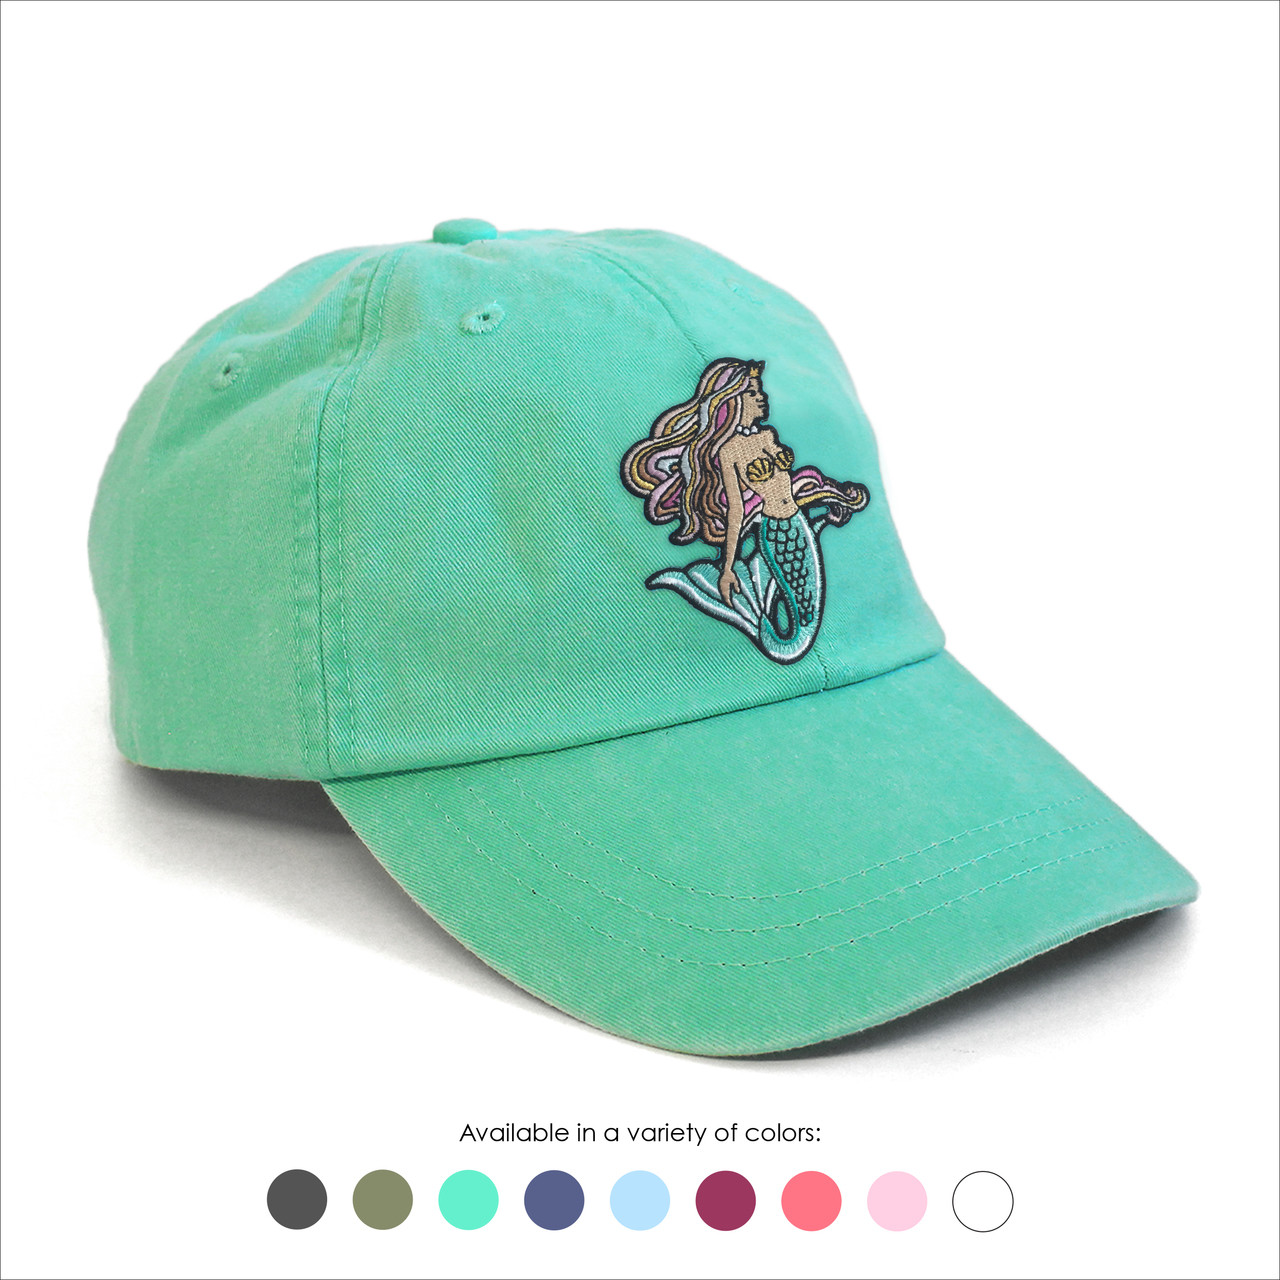 Mermaid Baseball Hat - Choose your hat color! - Wildflower + Co. 727d3ad238a